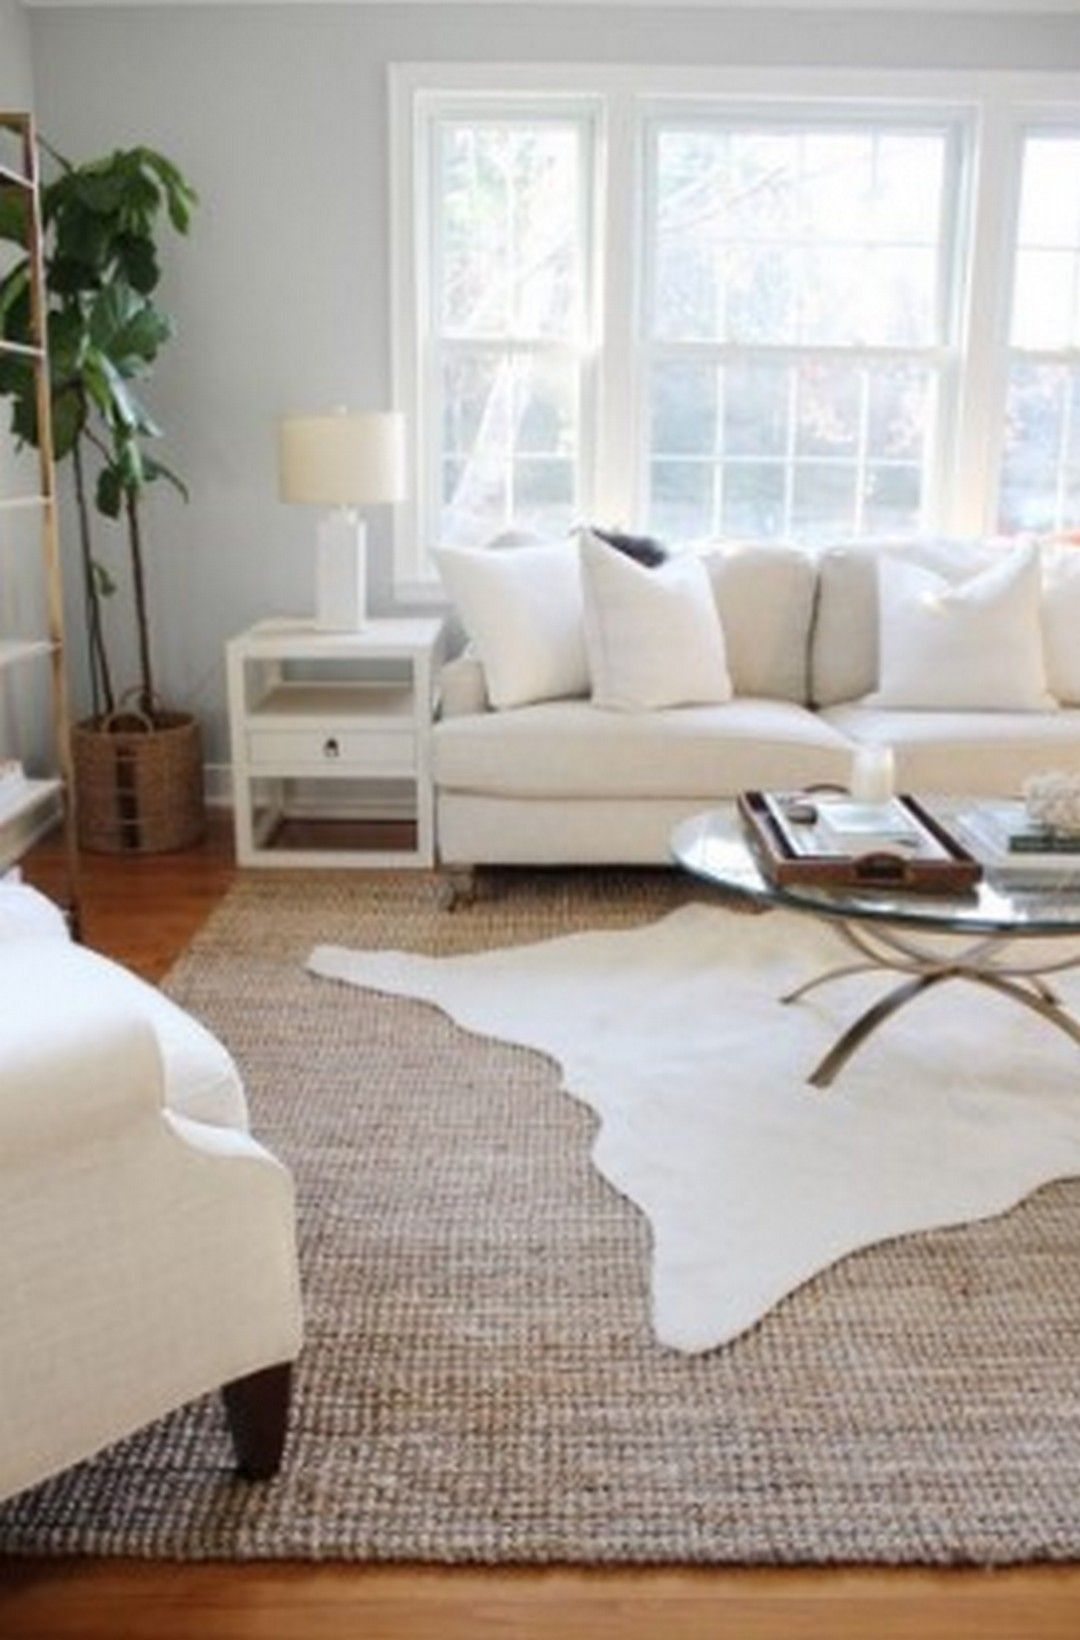 5 Chic Ideas For Decoration With Living Room Rugs Living Room Carpet Layered Rugs Living Room Rugs In Living Room